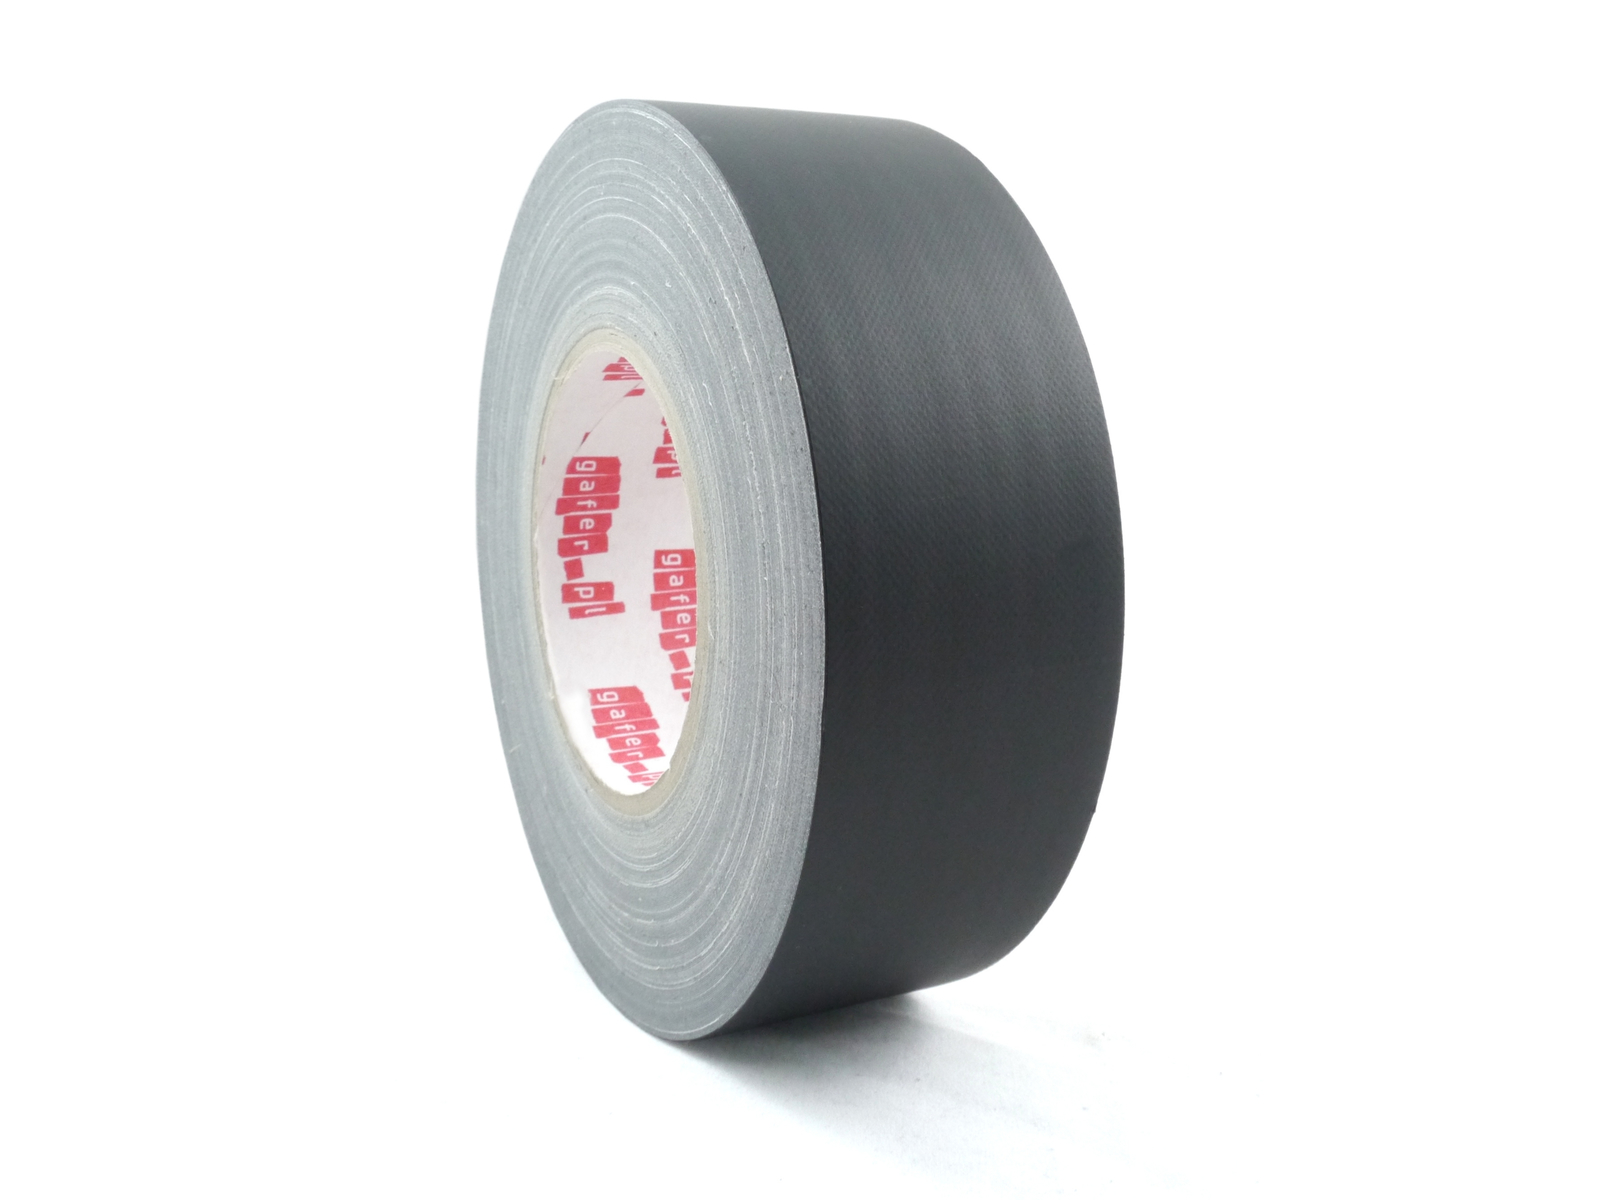 GAFER.PL MAX ai gaffa Tape 50mm x 50m nero opaco